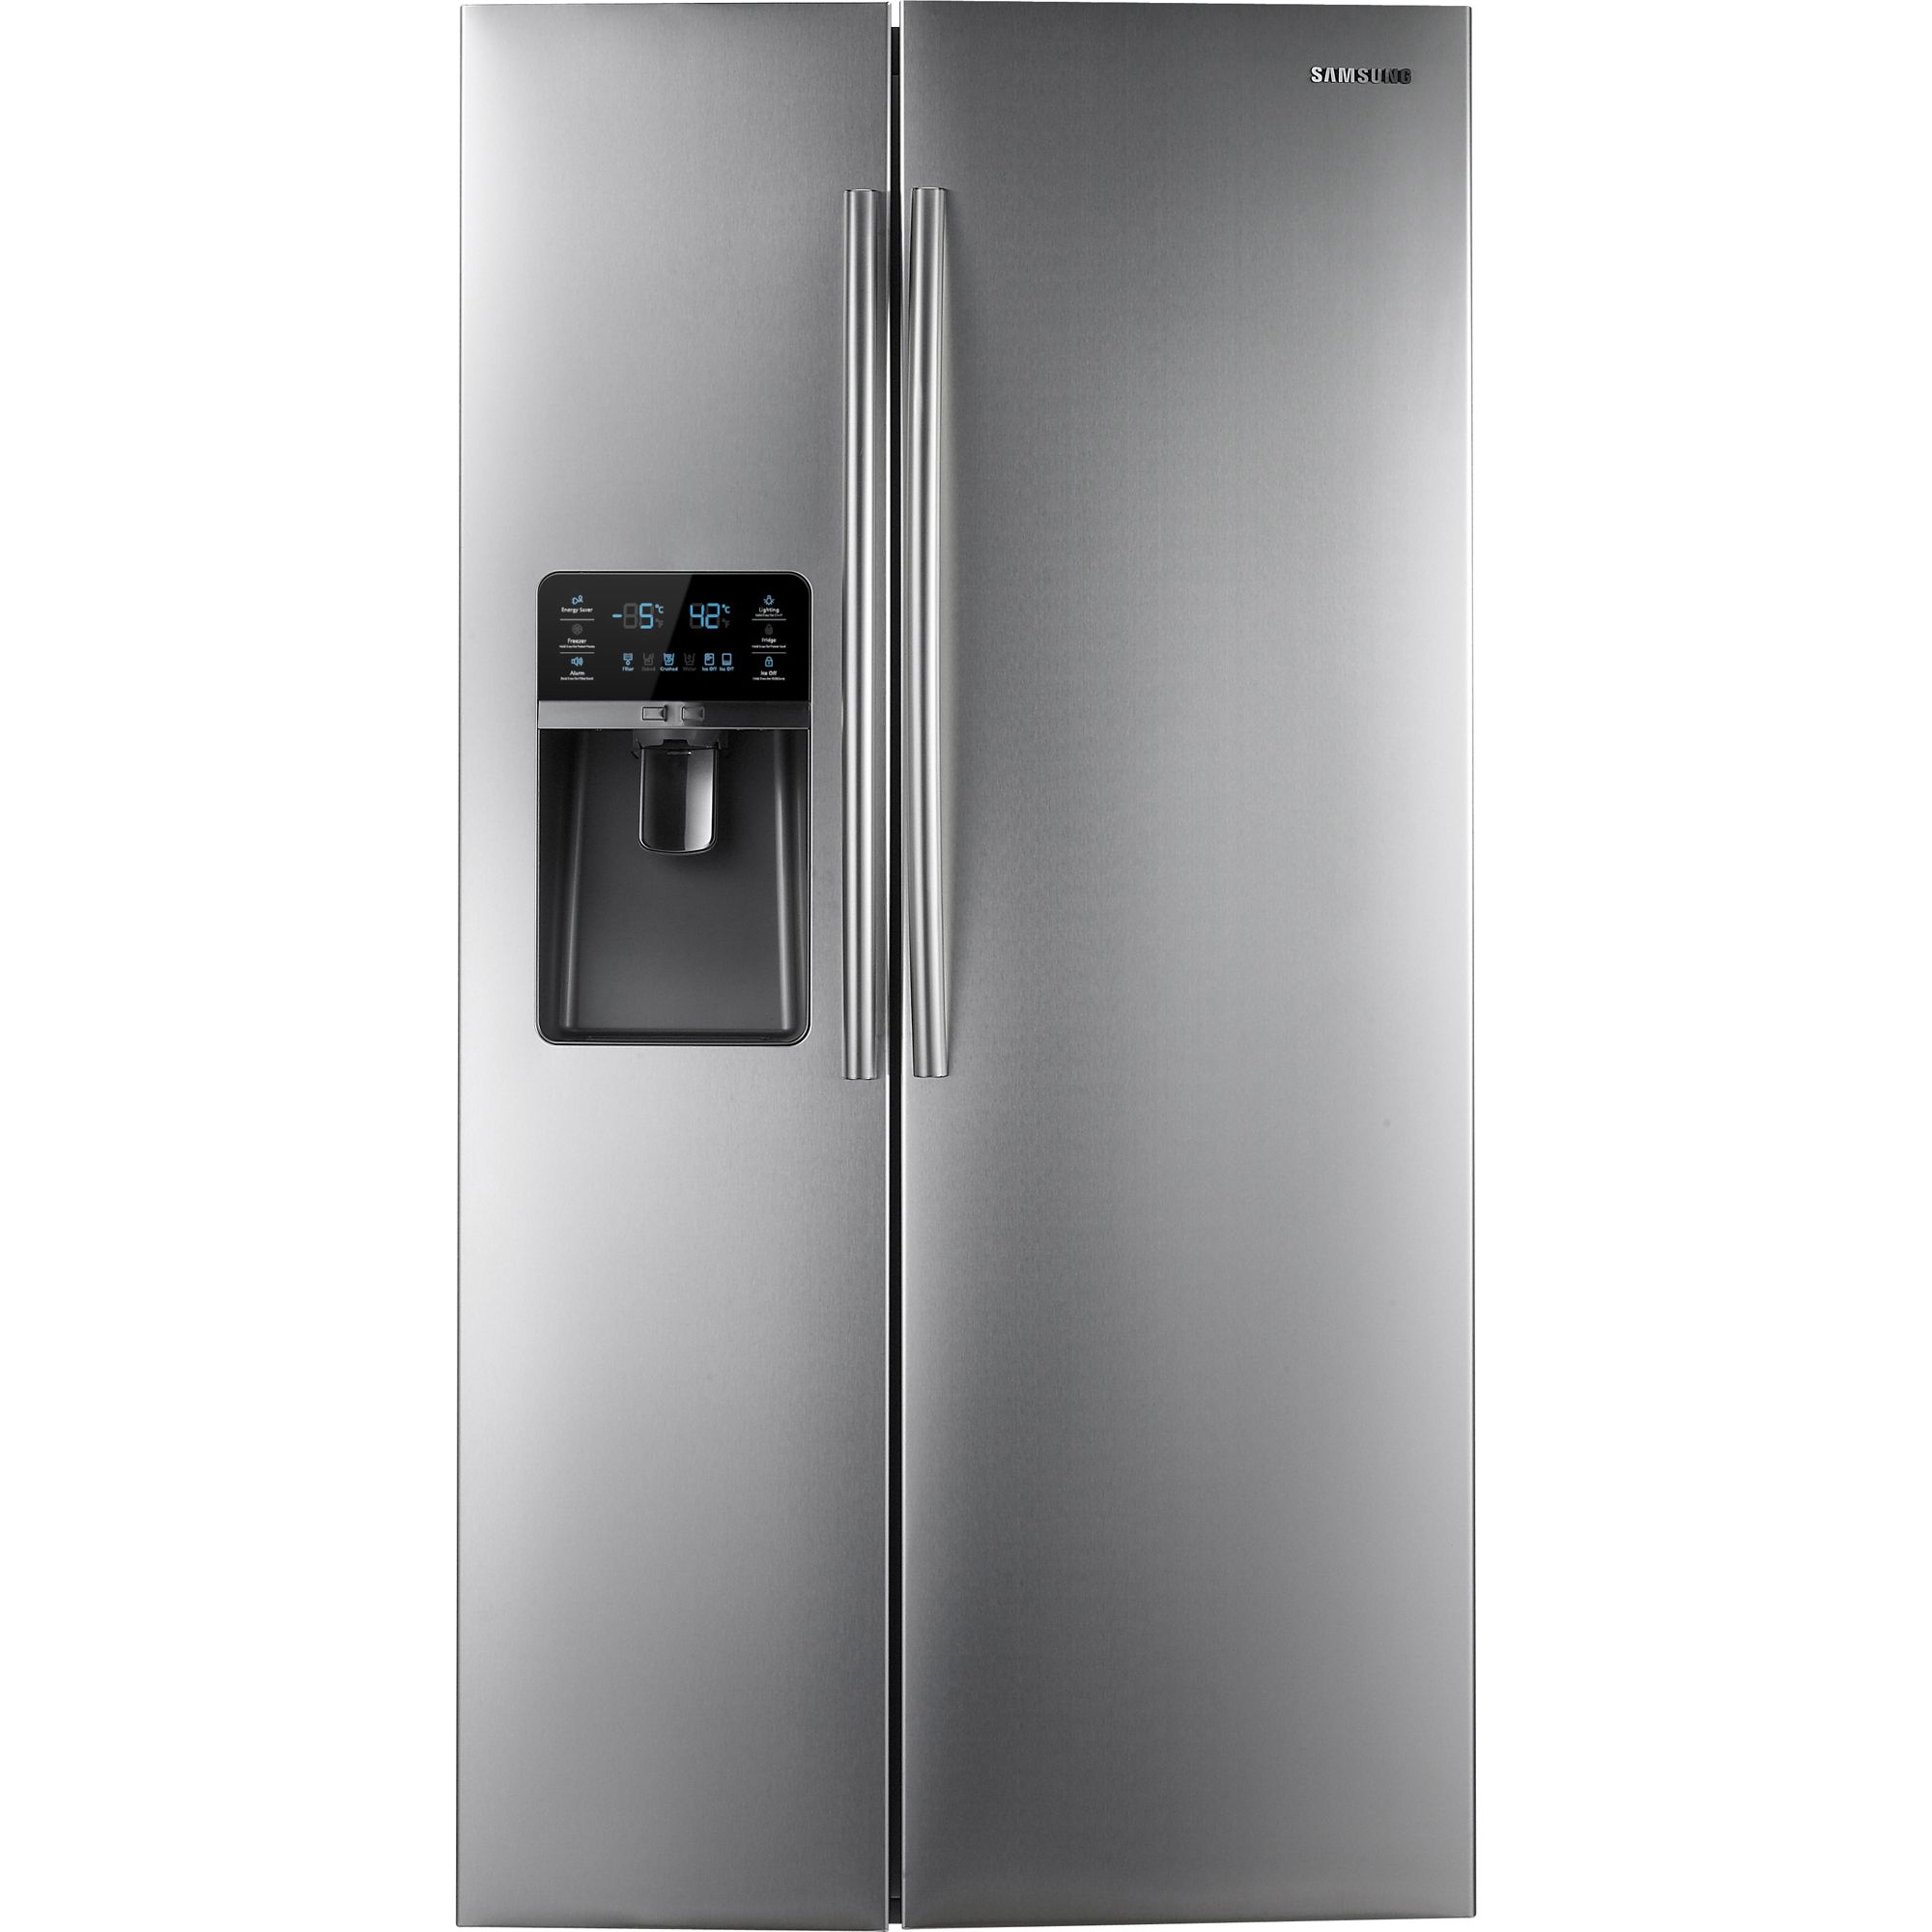 Samsung 30 0 Cu Ft Side By Side Refrigerator Stainless